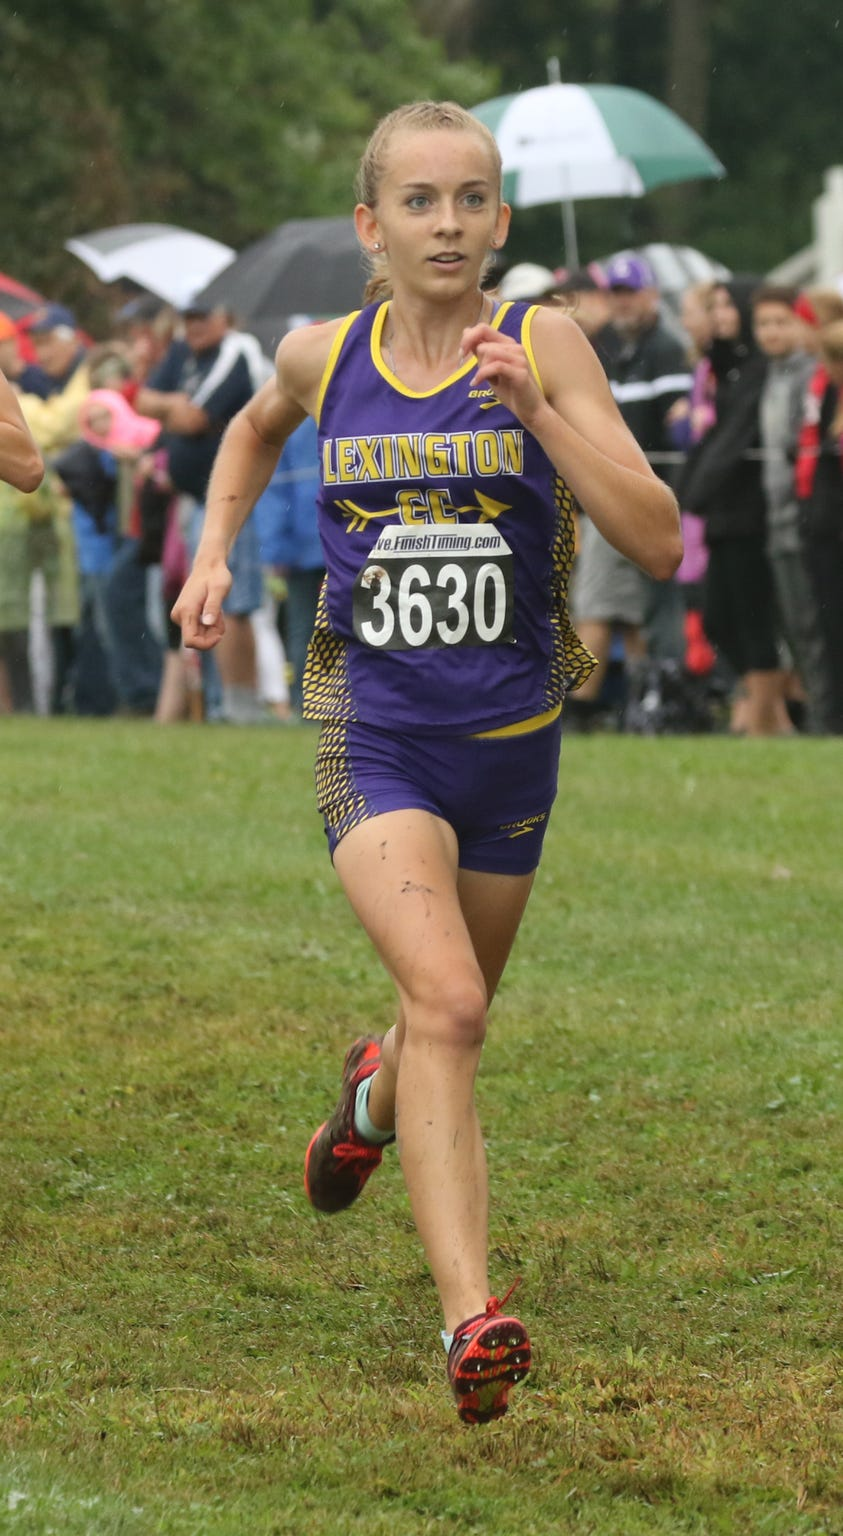 Lexington's Joanna Halfhill crosses the finish line during the Tiffin Cross Country Carnival.